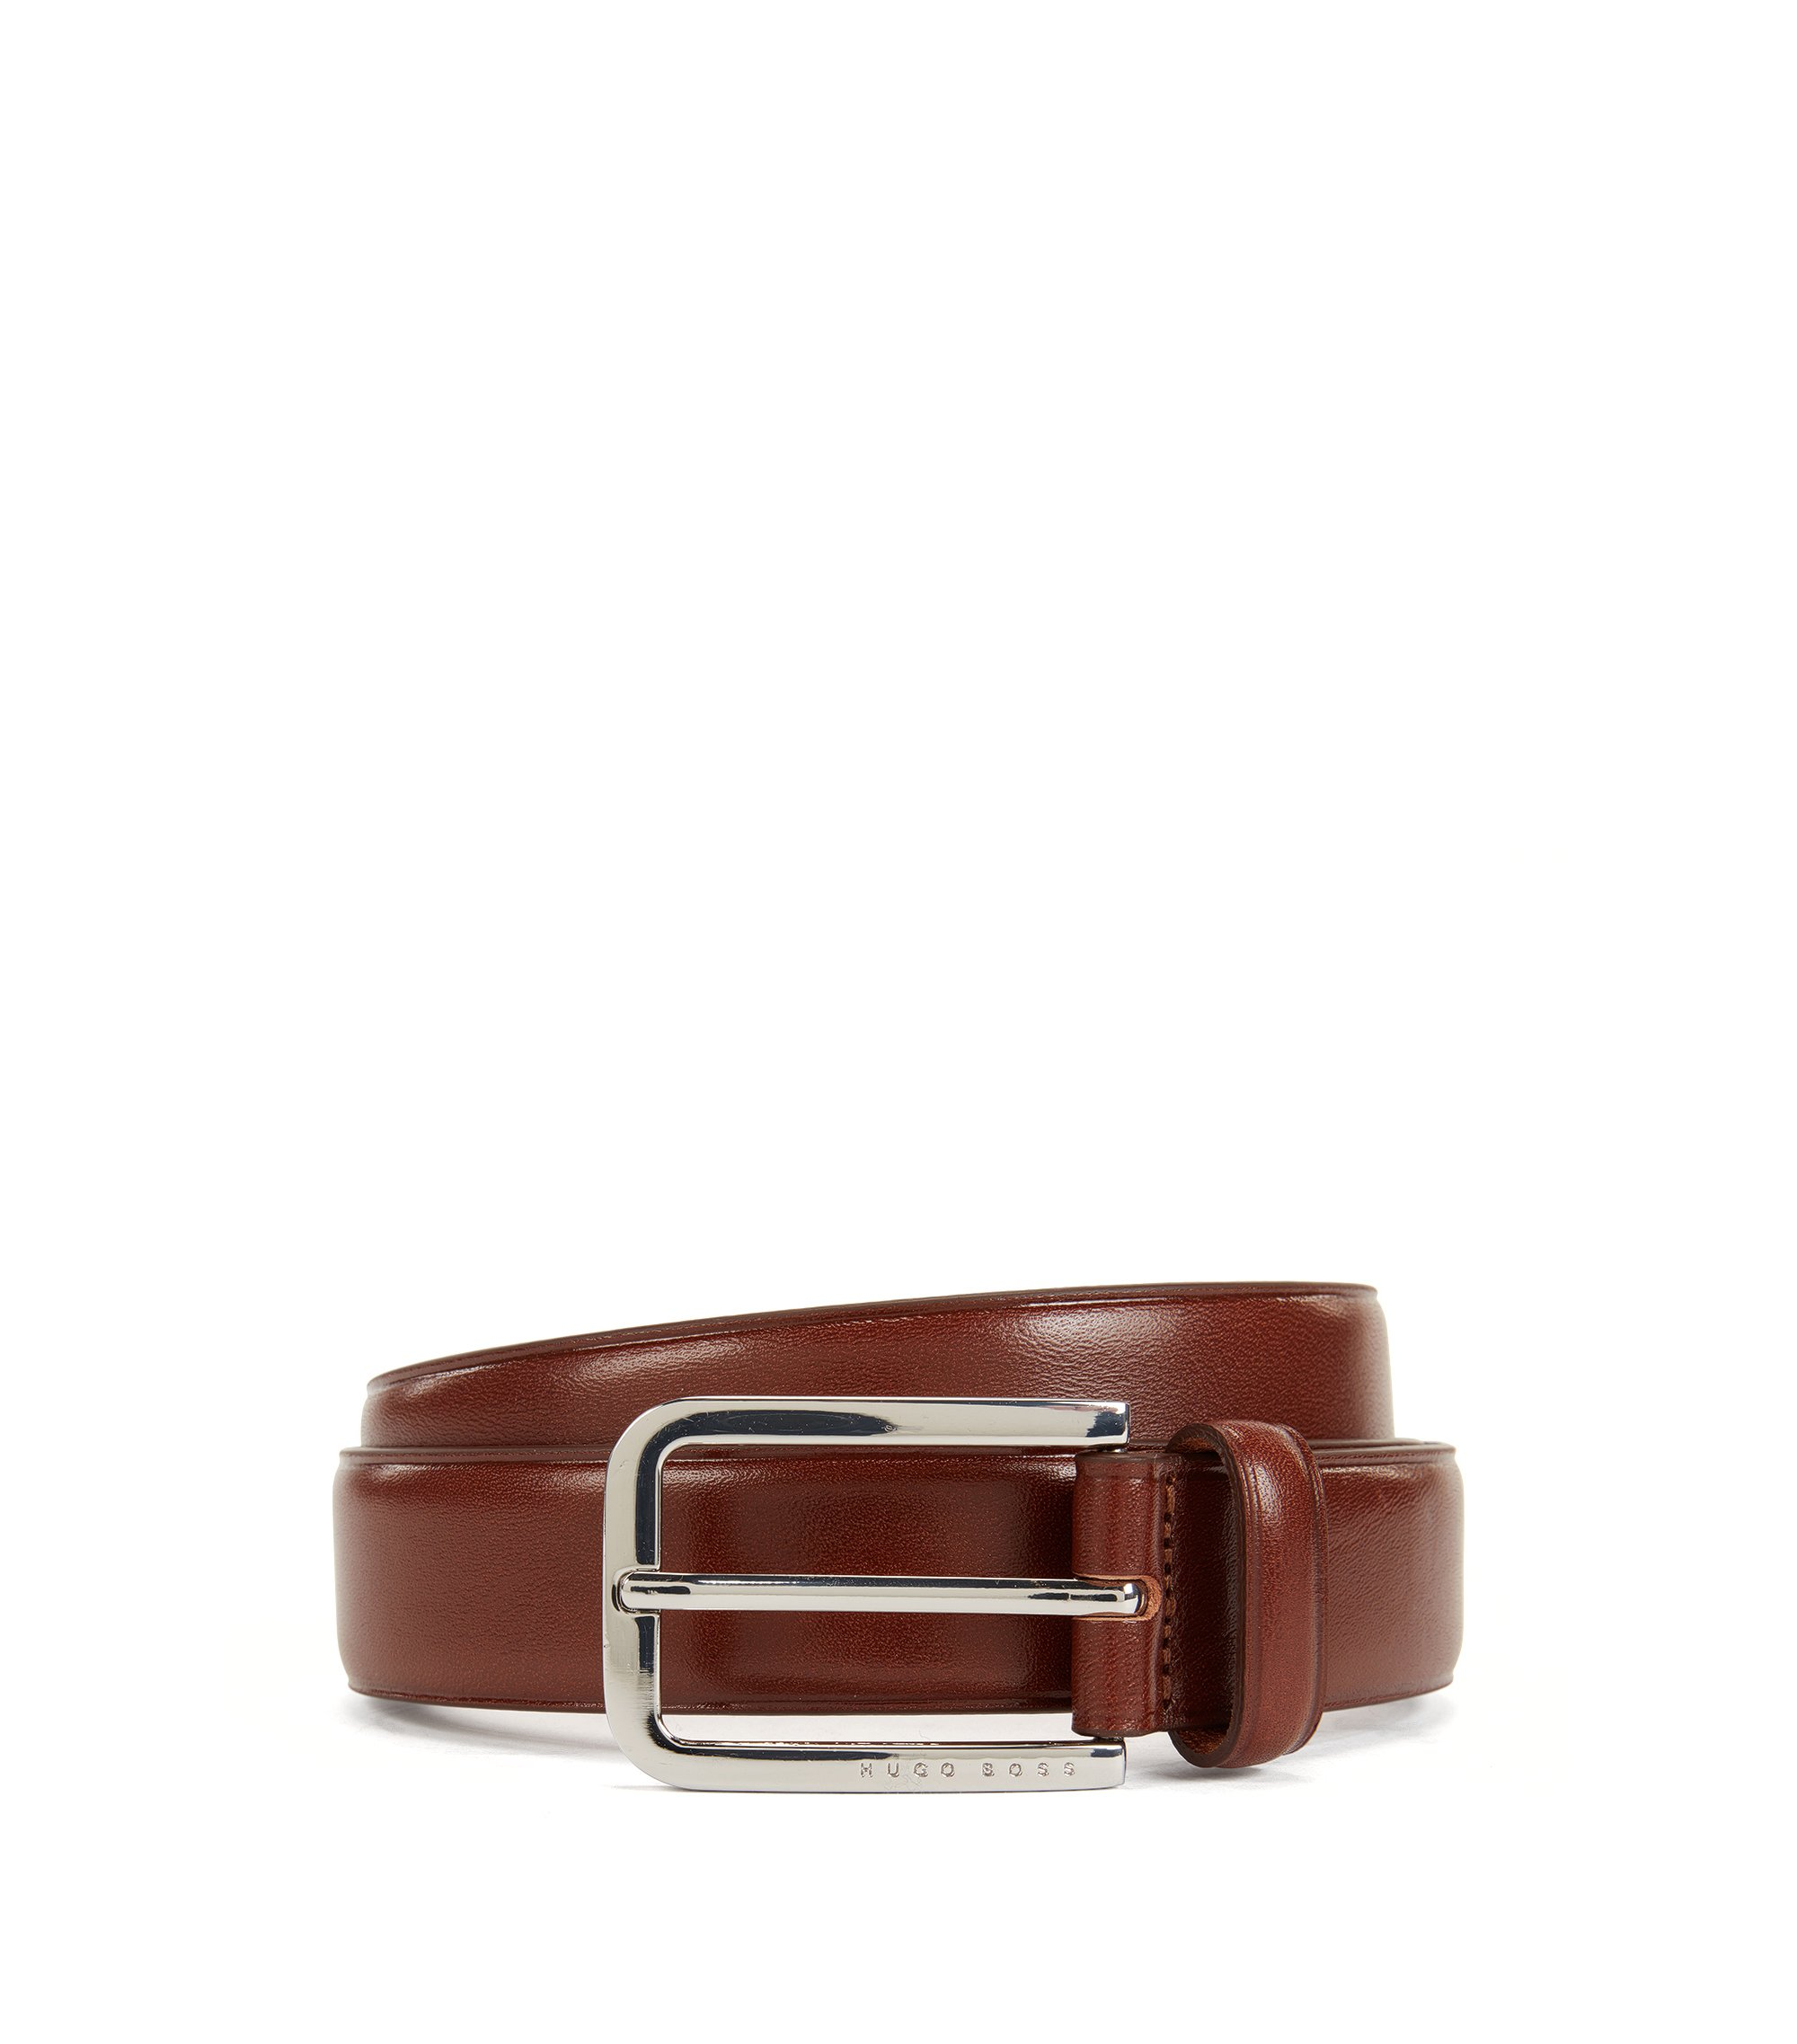 Smooth leather belt with rounded buckle in polished metal, Brown